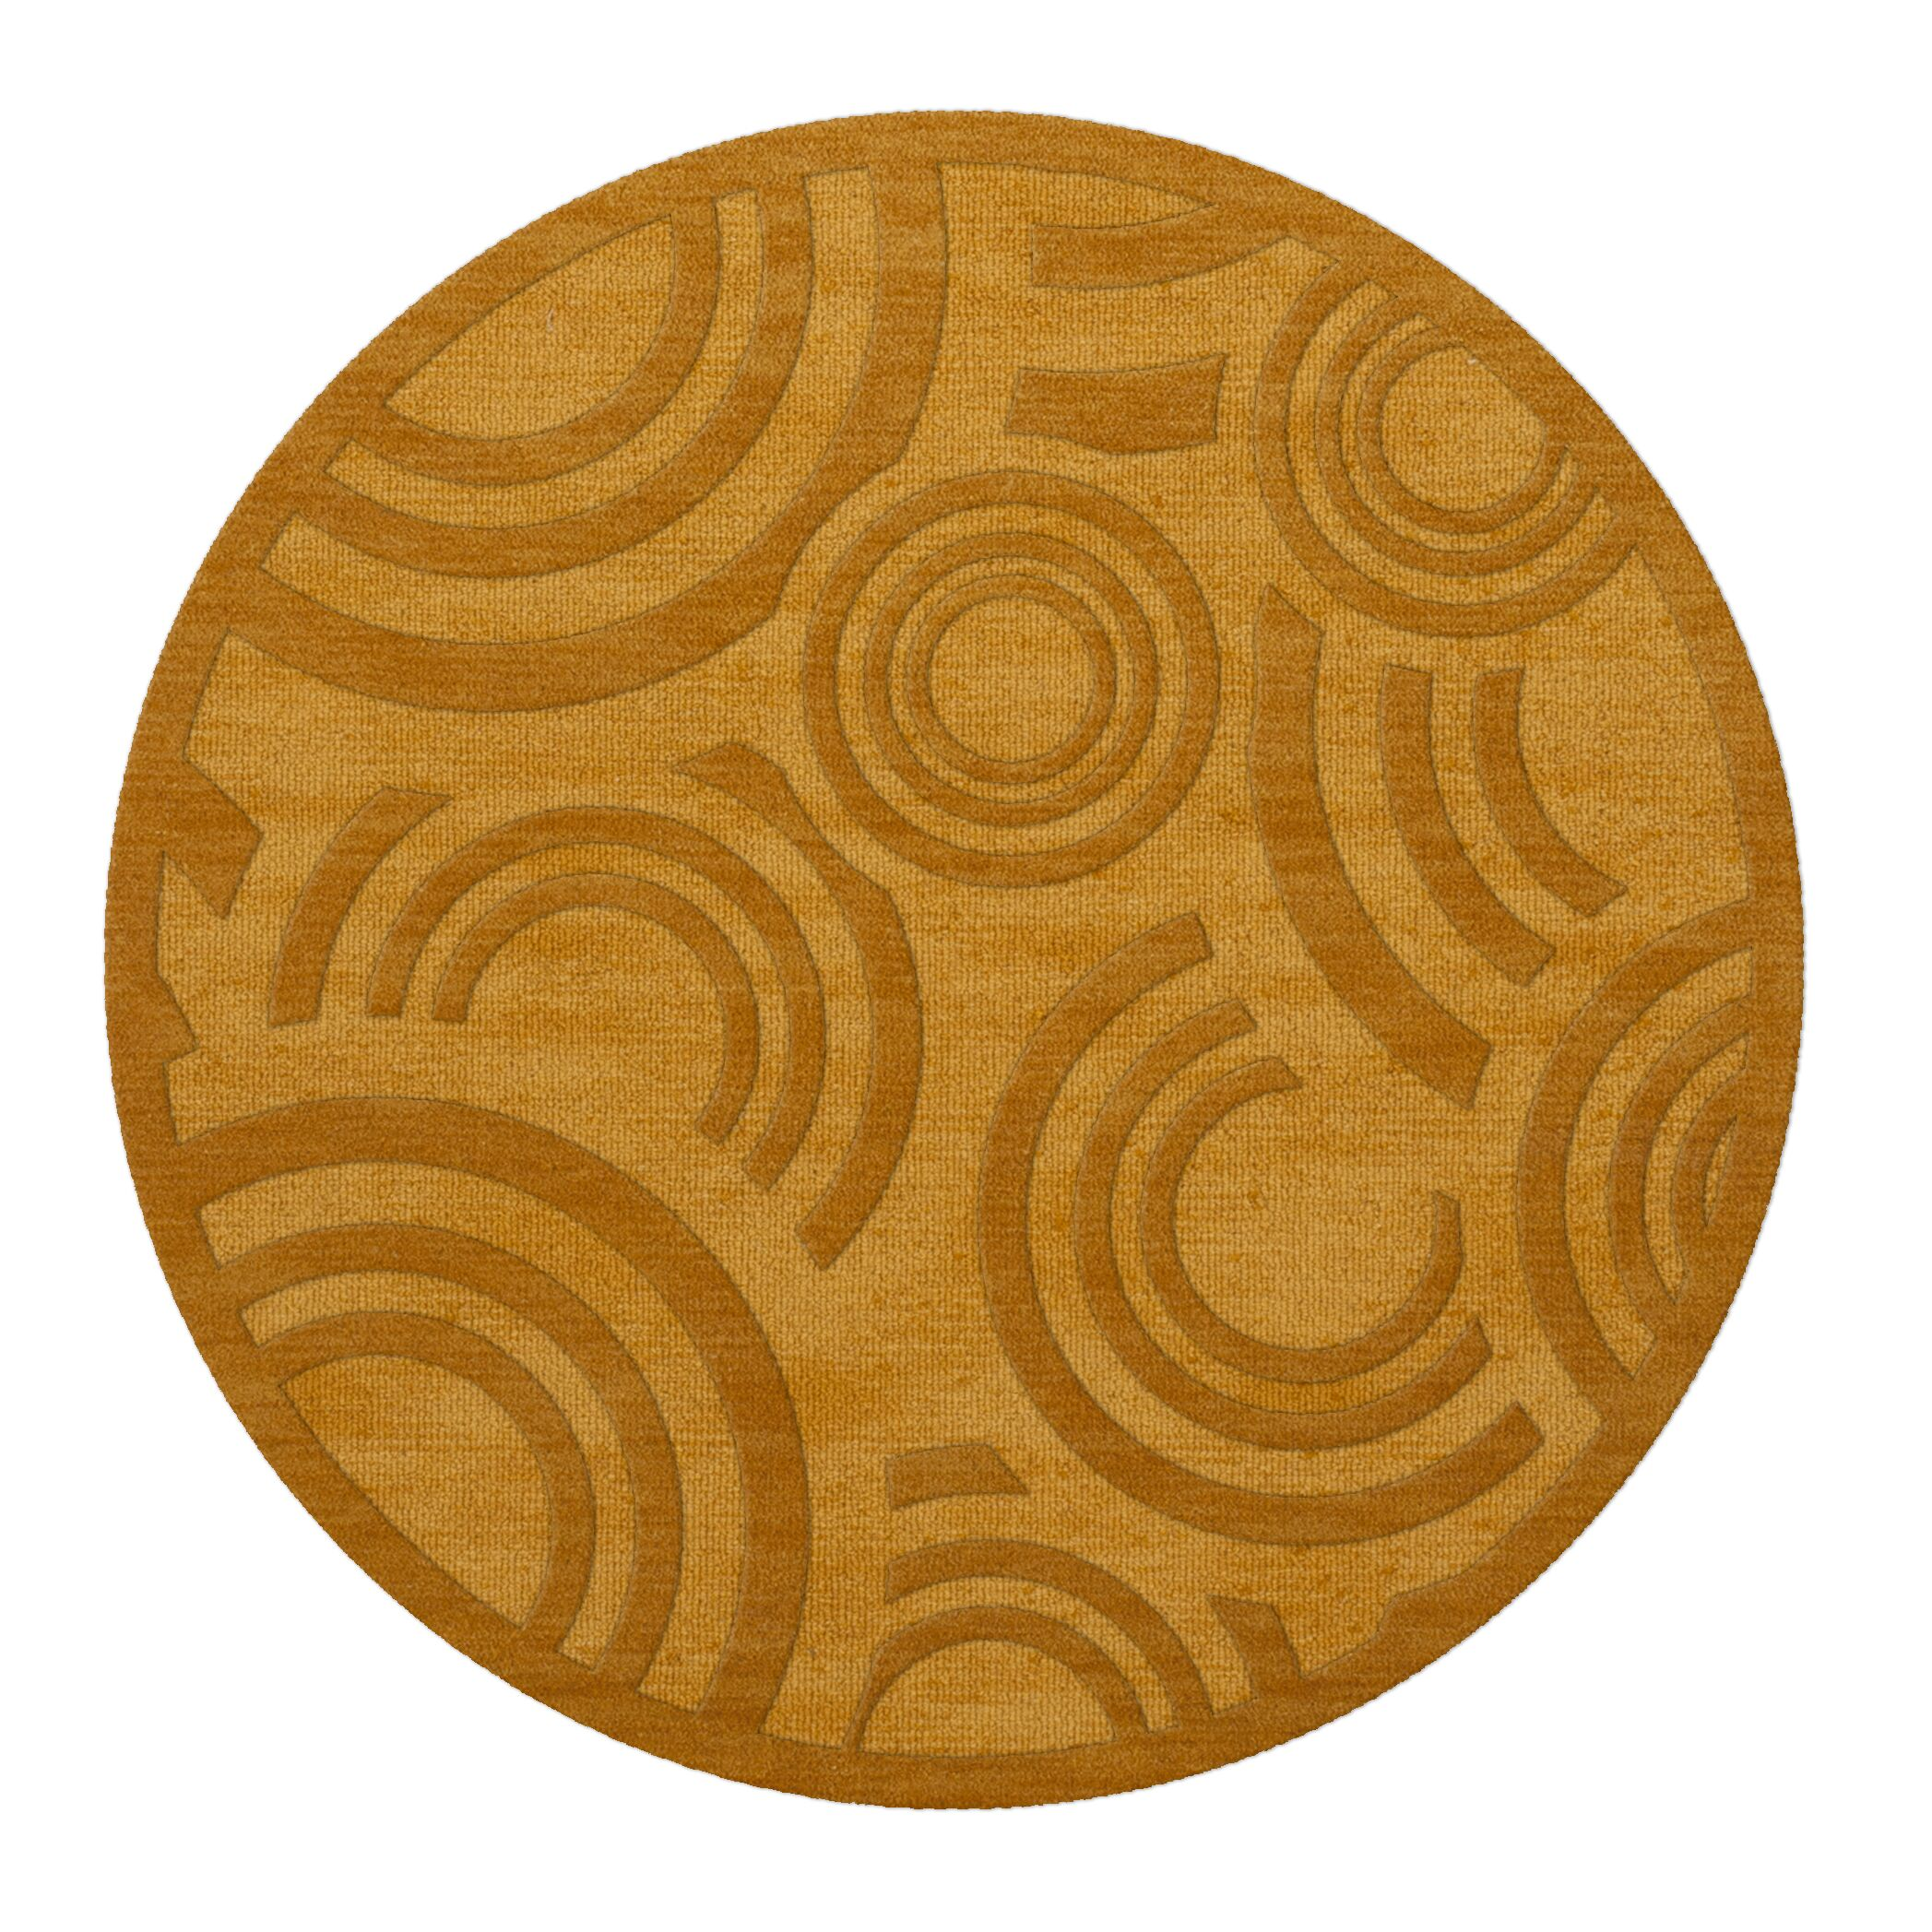 Dover Tufted Wool Butterscotch Area Rug Rug Size: Round 12'